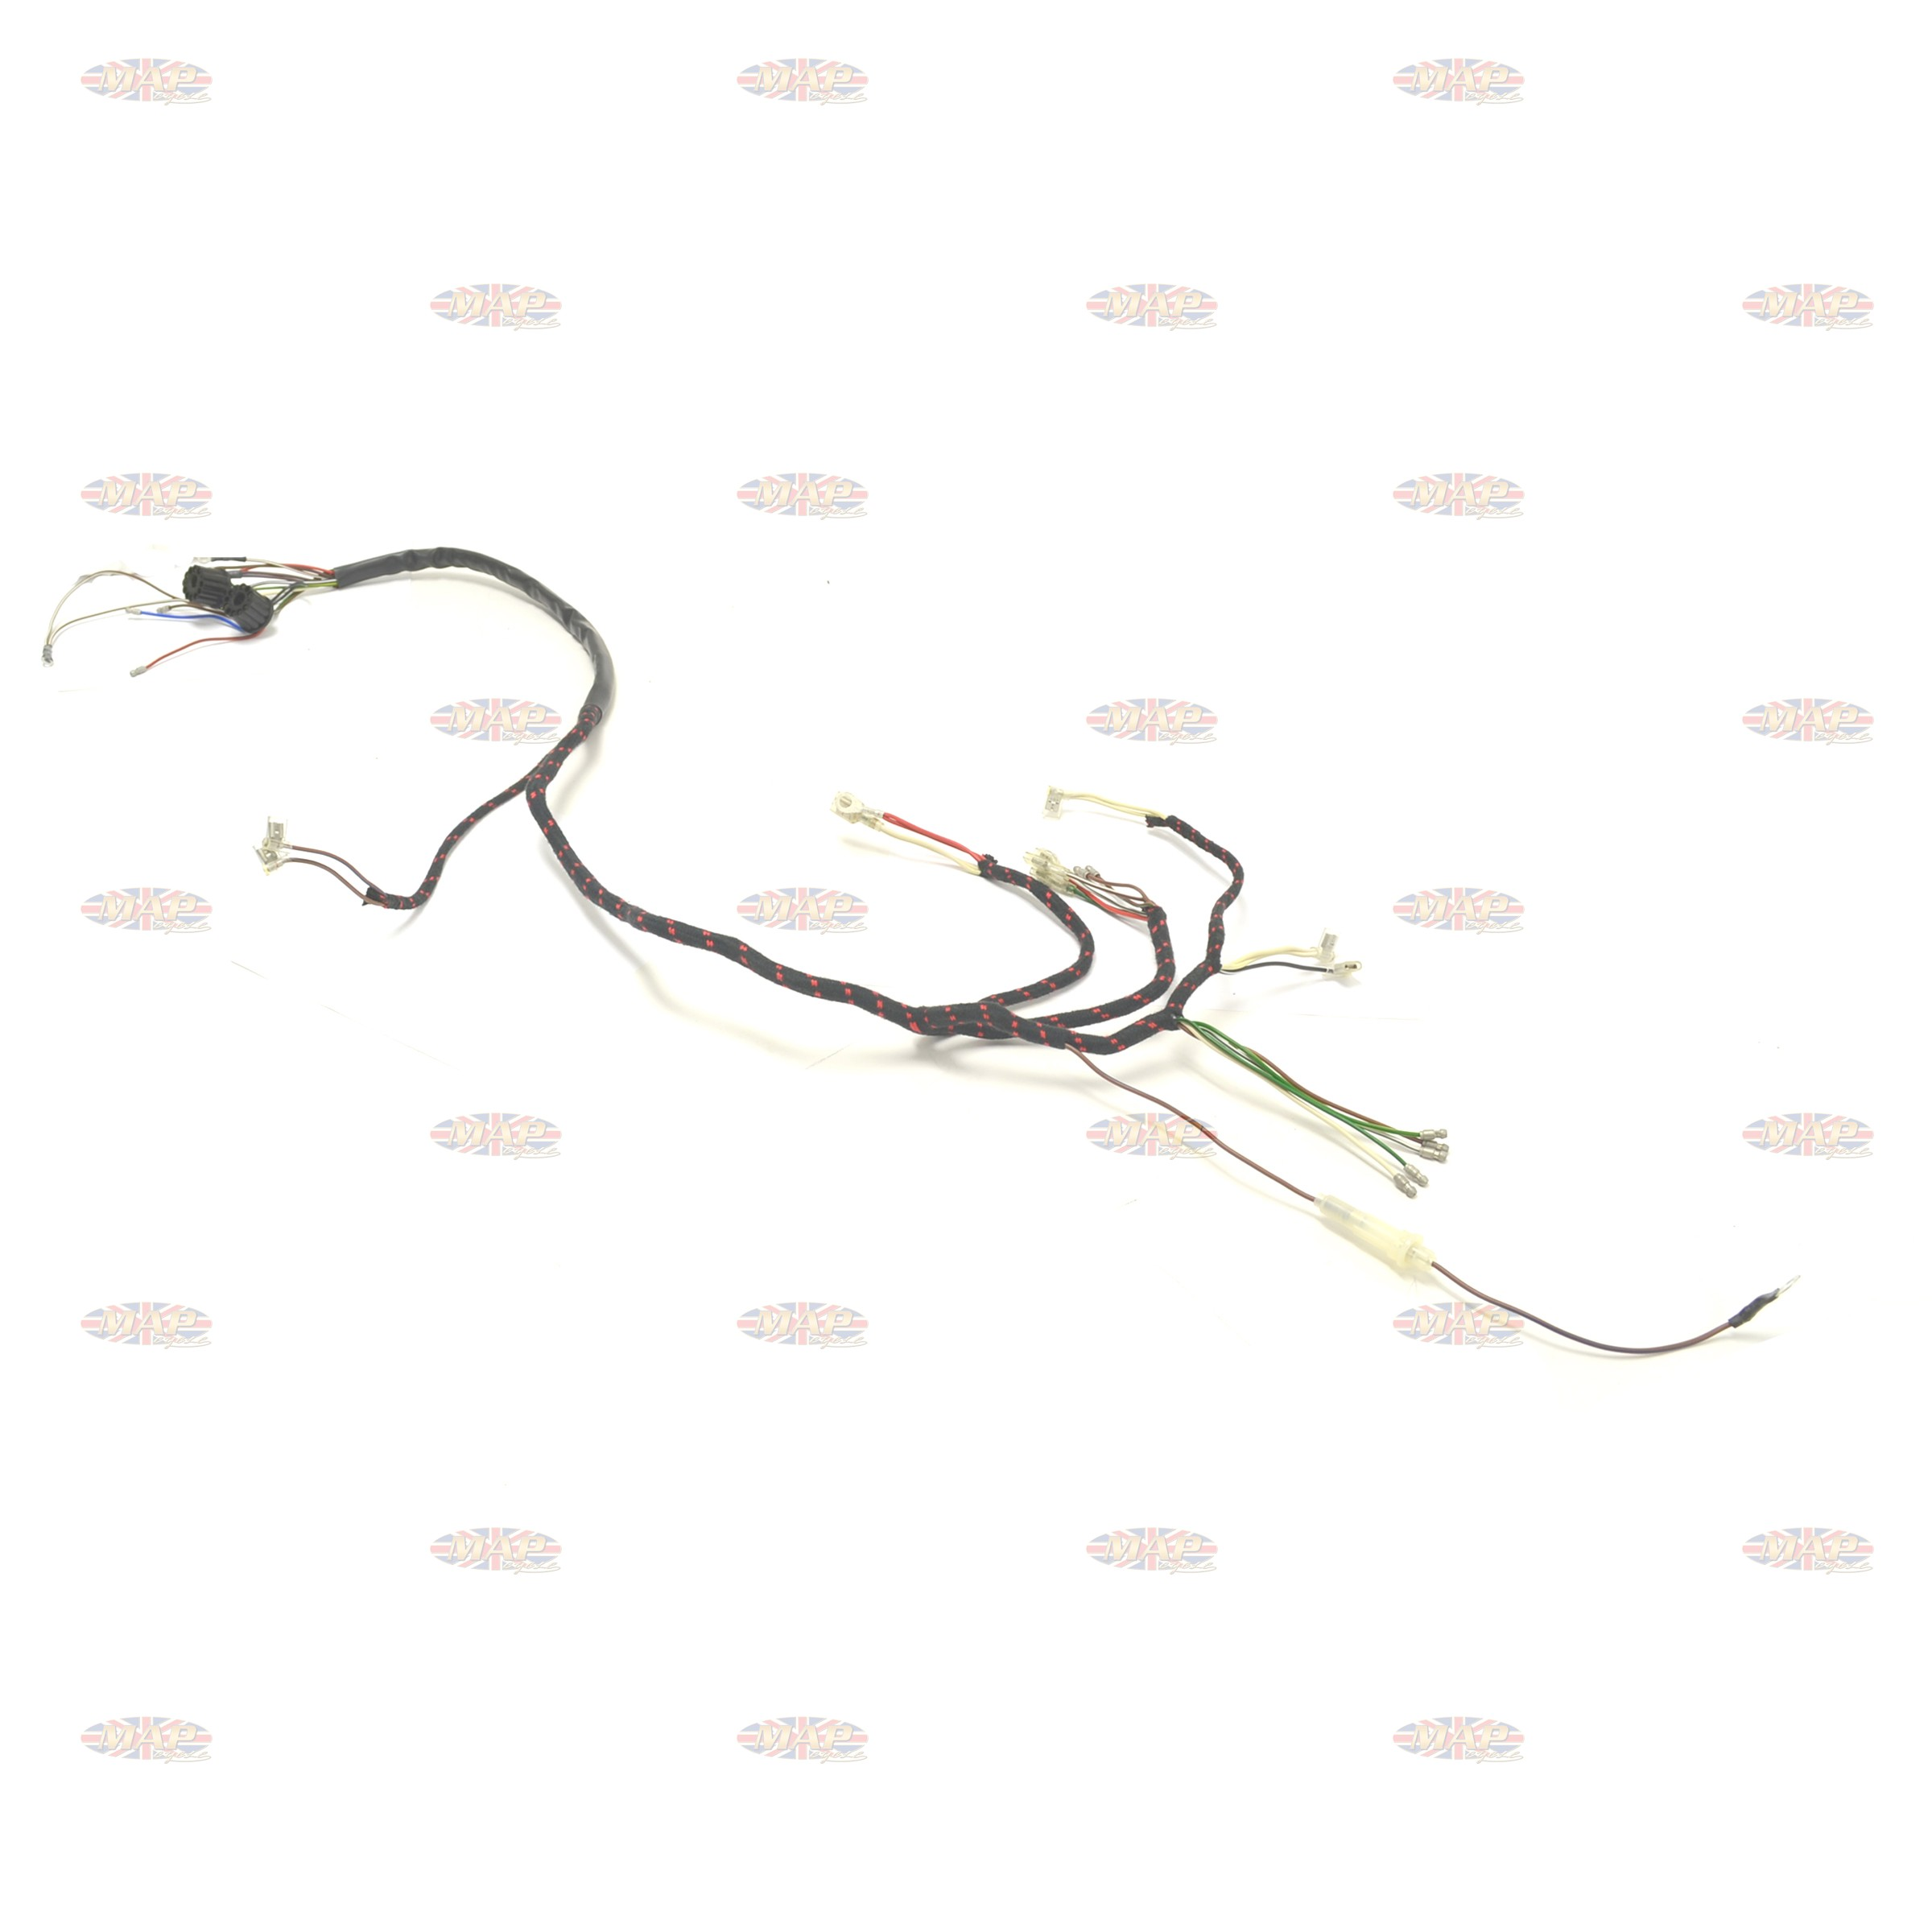 BSA 1966-67 A50 A65 UK-Made 12 Volt Wiring Harness